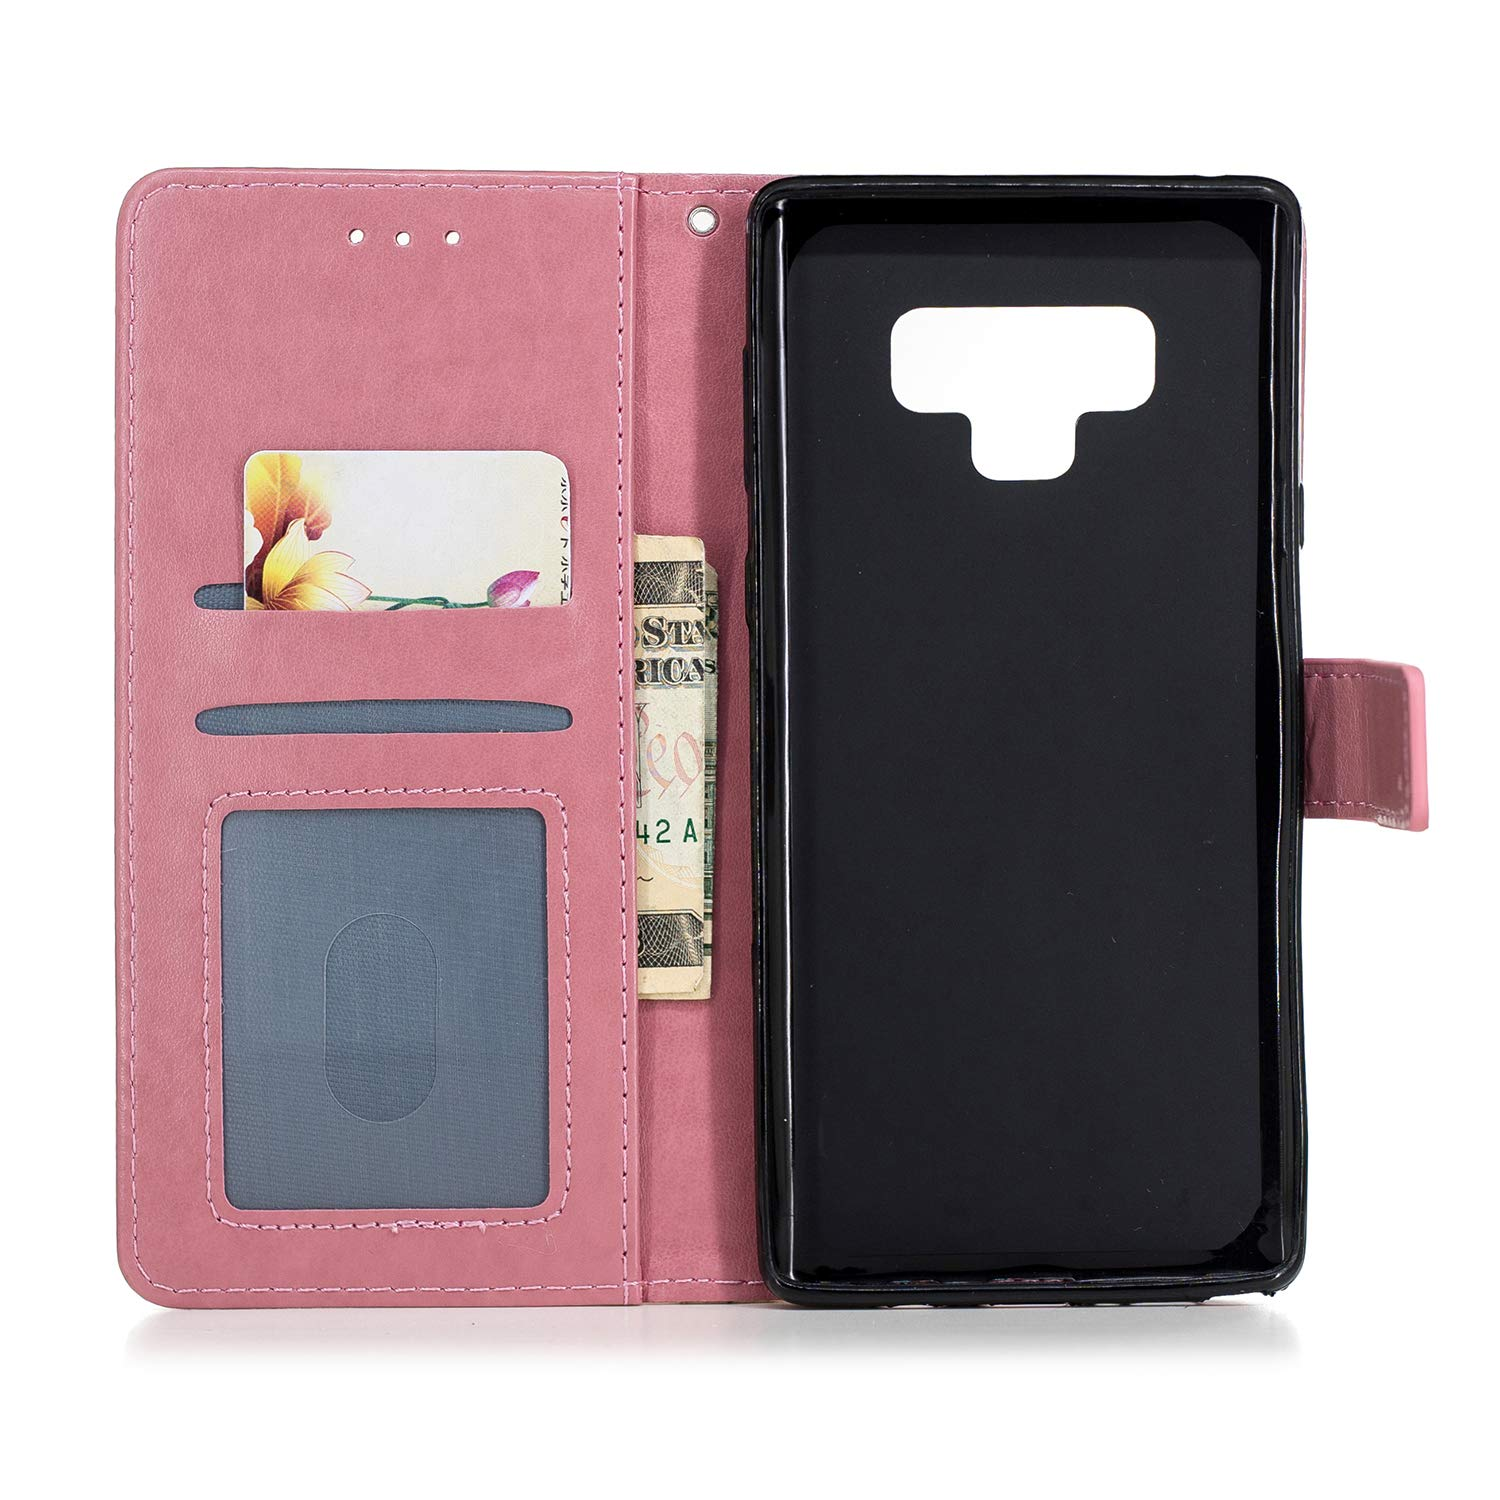 Samsung Galaxy Note 9 Case, AIIYG DS 3D Pattern [Kickstand Feature] Flip Folio Leather Wallet Case with ID and Credit Card Pockets for Galaxy Note 9 (Pink Pineapple) by AIIYG DS (Image #6)